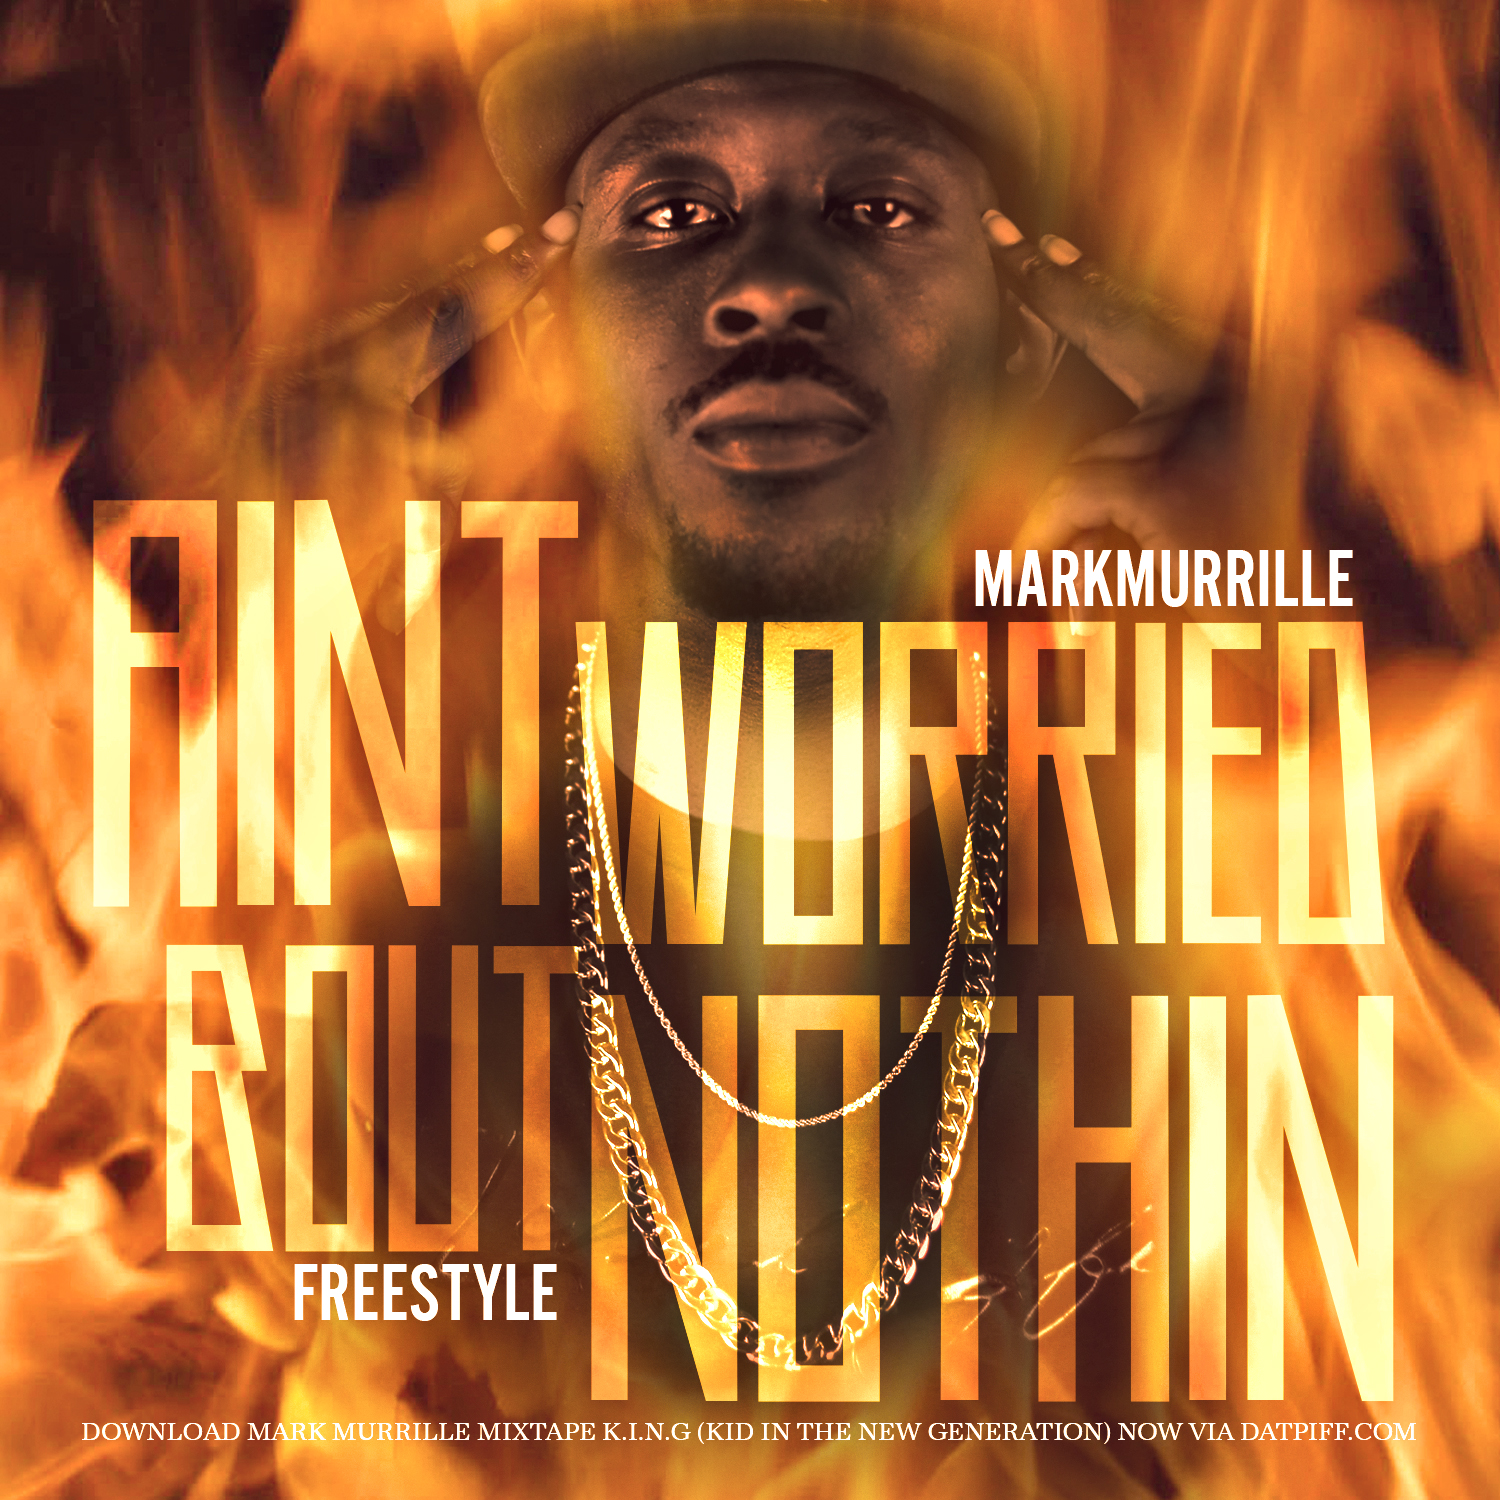 Mark Murrille - Aint Worried Bout Nothin Freestyle